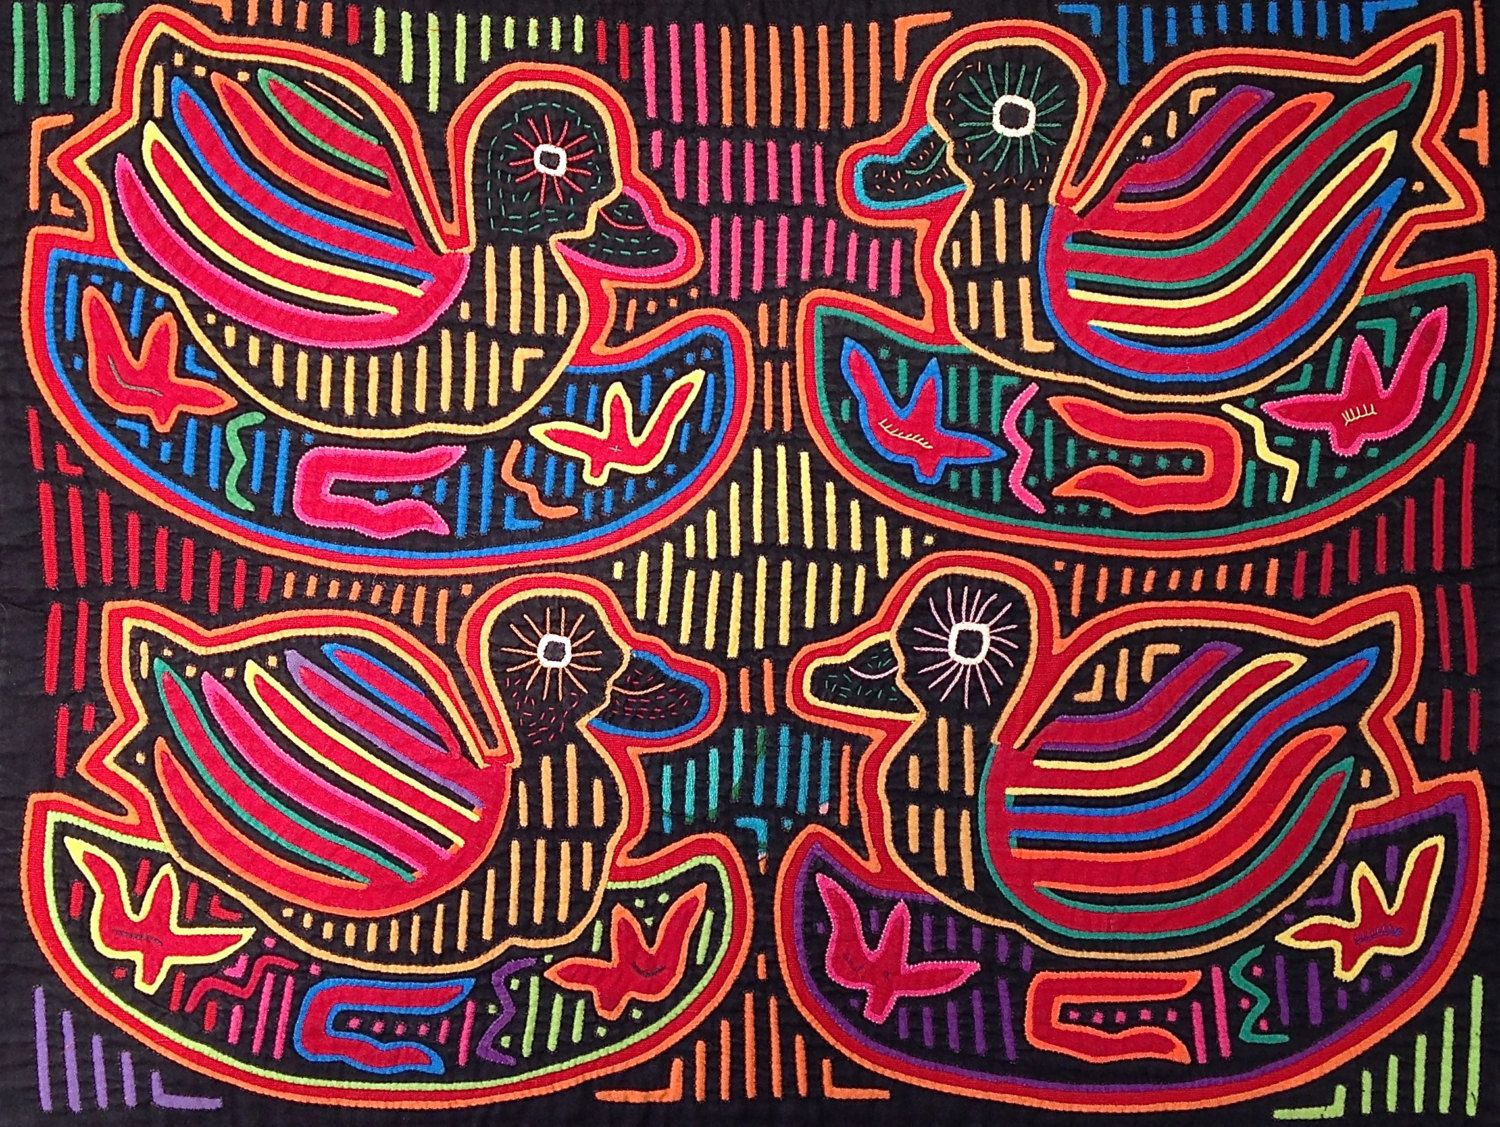 RECENTLY REDUCED FROM $205 to $185 ! The Four Ducklings mola is truly a masterpiece...older collectable molas are very rarely found in this pristine condition. This mola was made in the early 1960s, and is a perfect example of the Cuna art at its very height. The remarkable design is very skillfully executed. Take a close look at the tiny stitches, the complexity of the pattern and the fact that every square inch of the panel is decorated! This degree of skill, design, and condition is not…